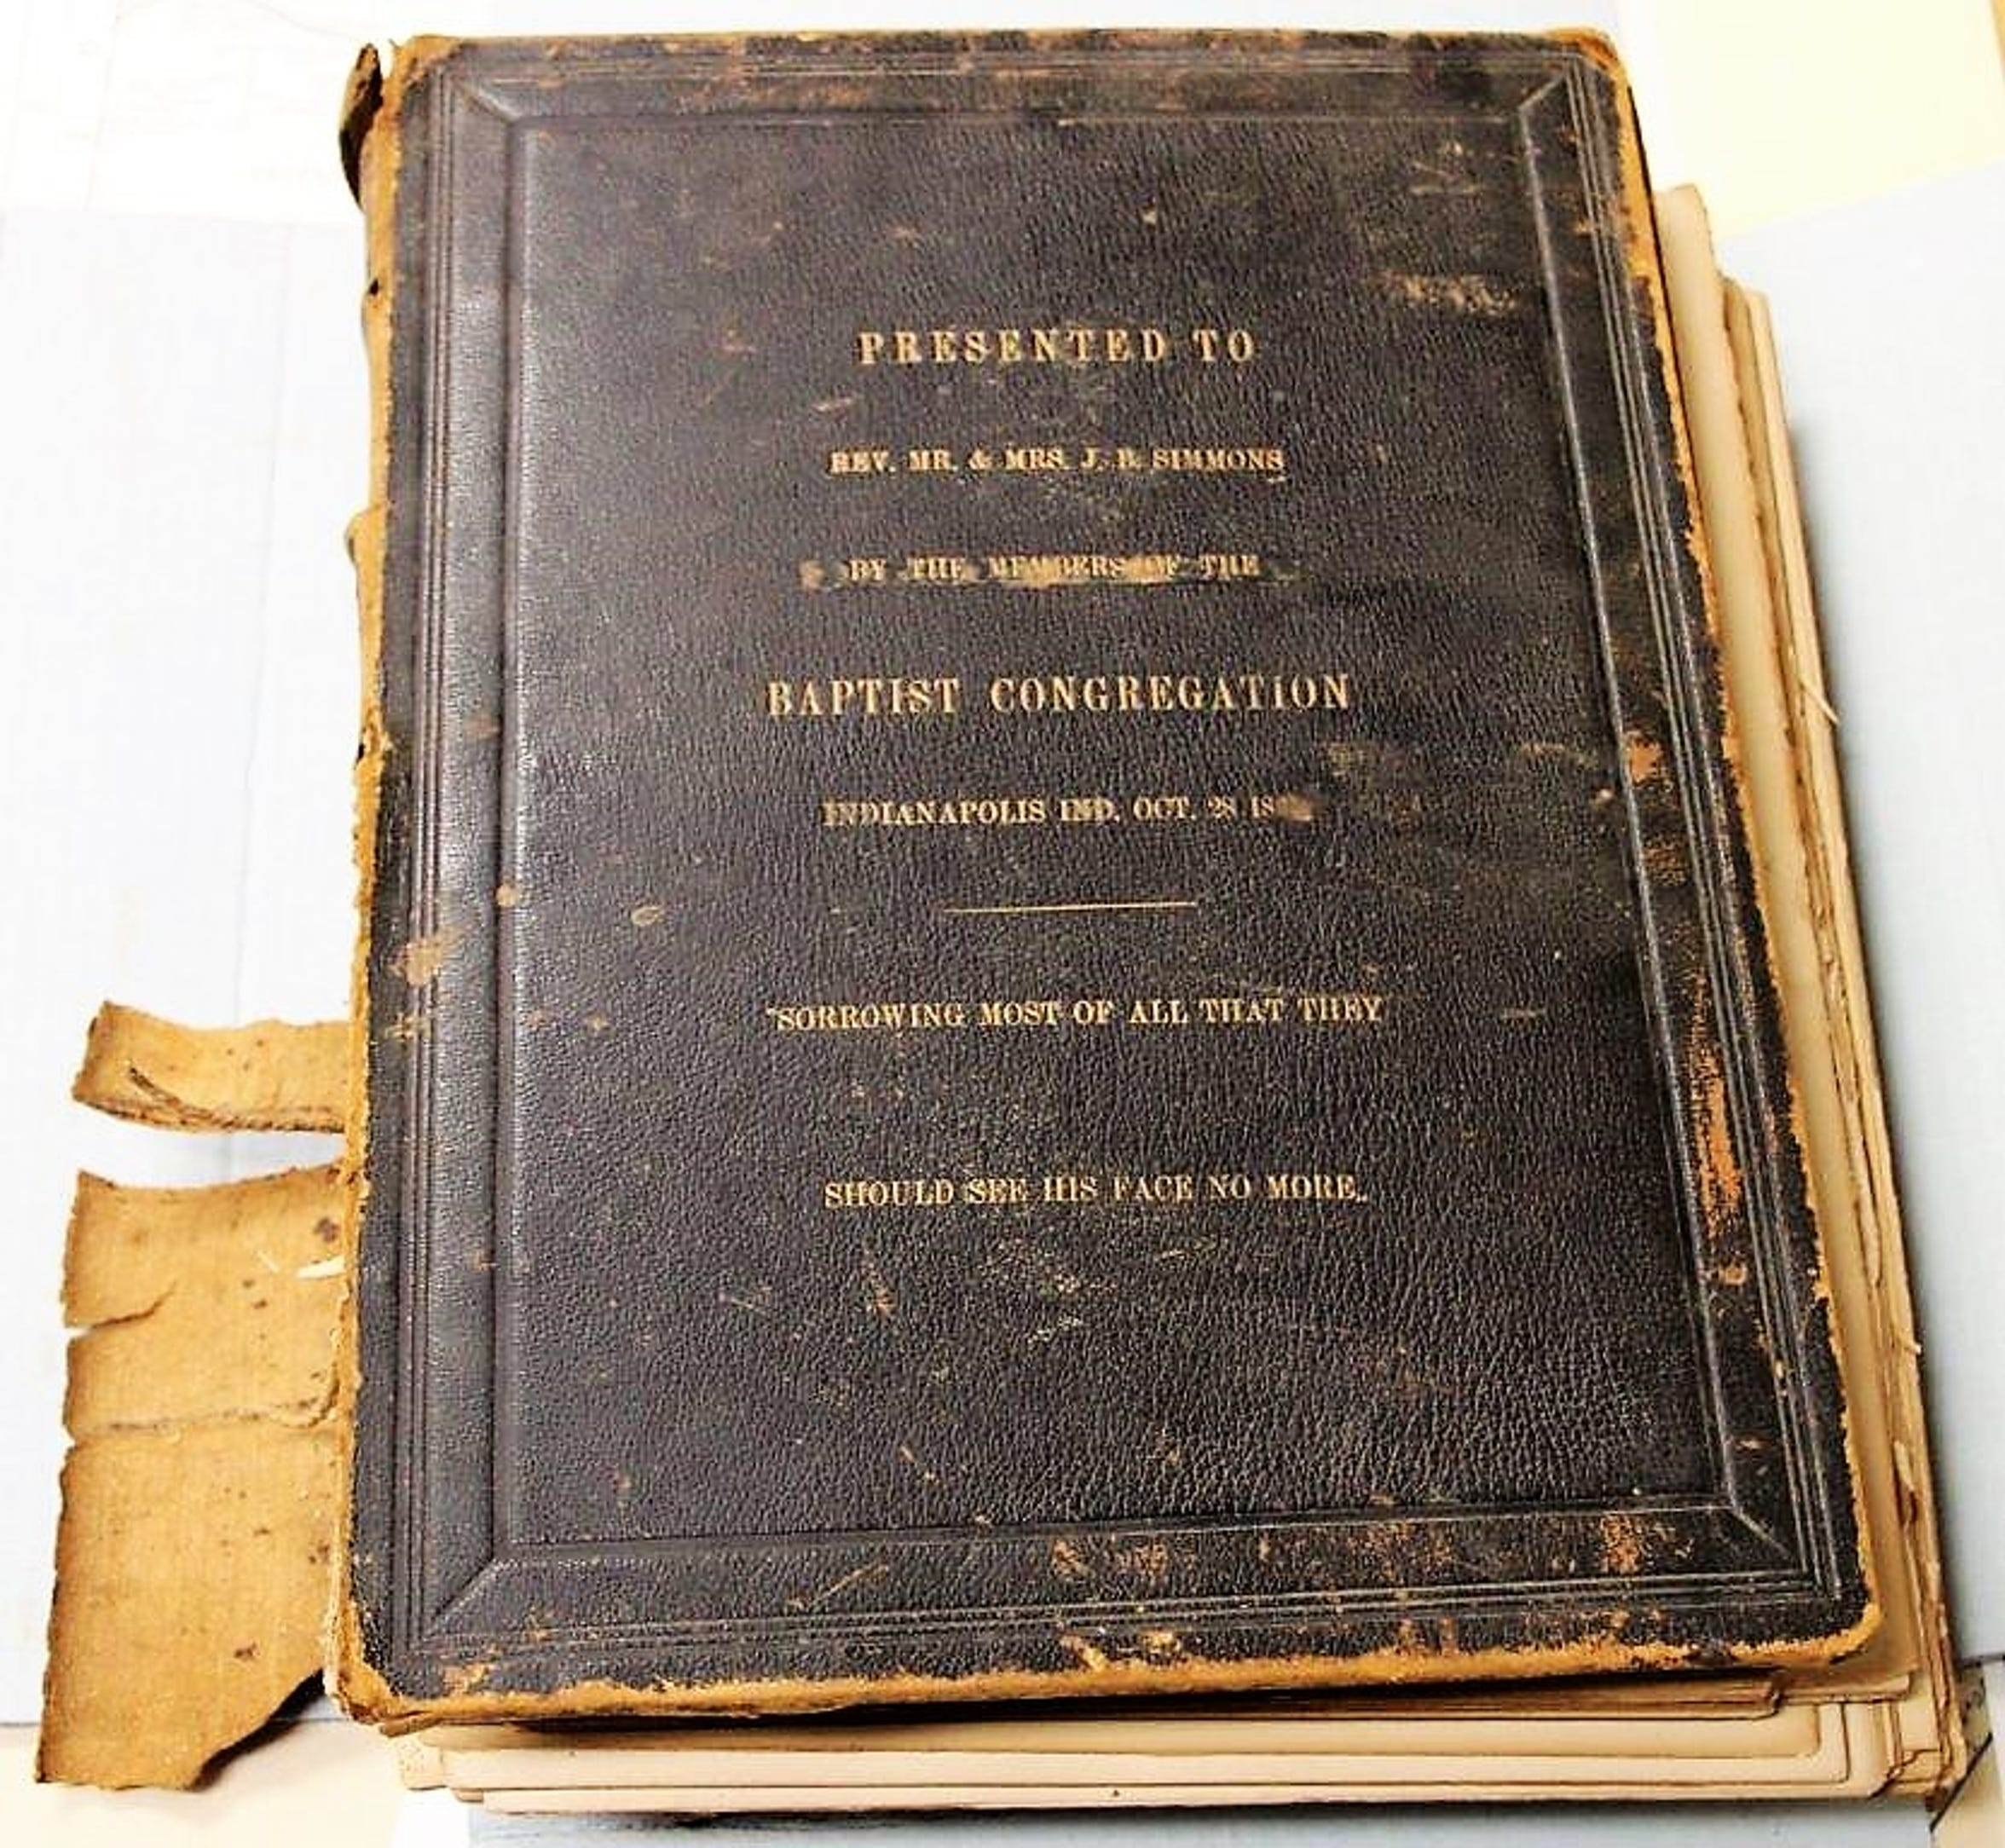 Bible presented to James B. Simmons and his wife, Mary, by his church in Indianapolis.